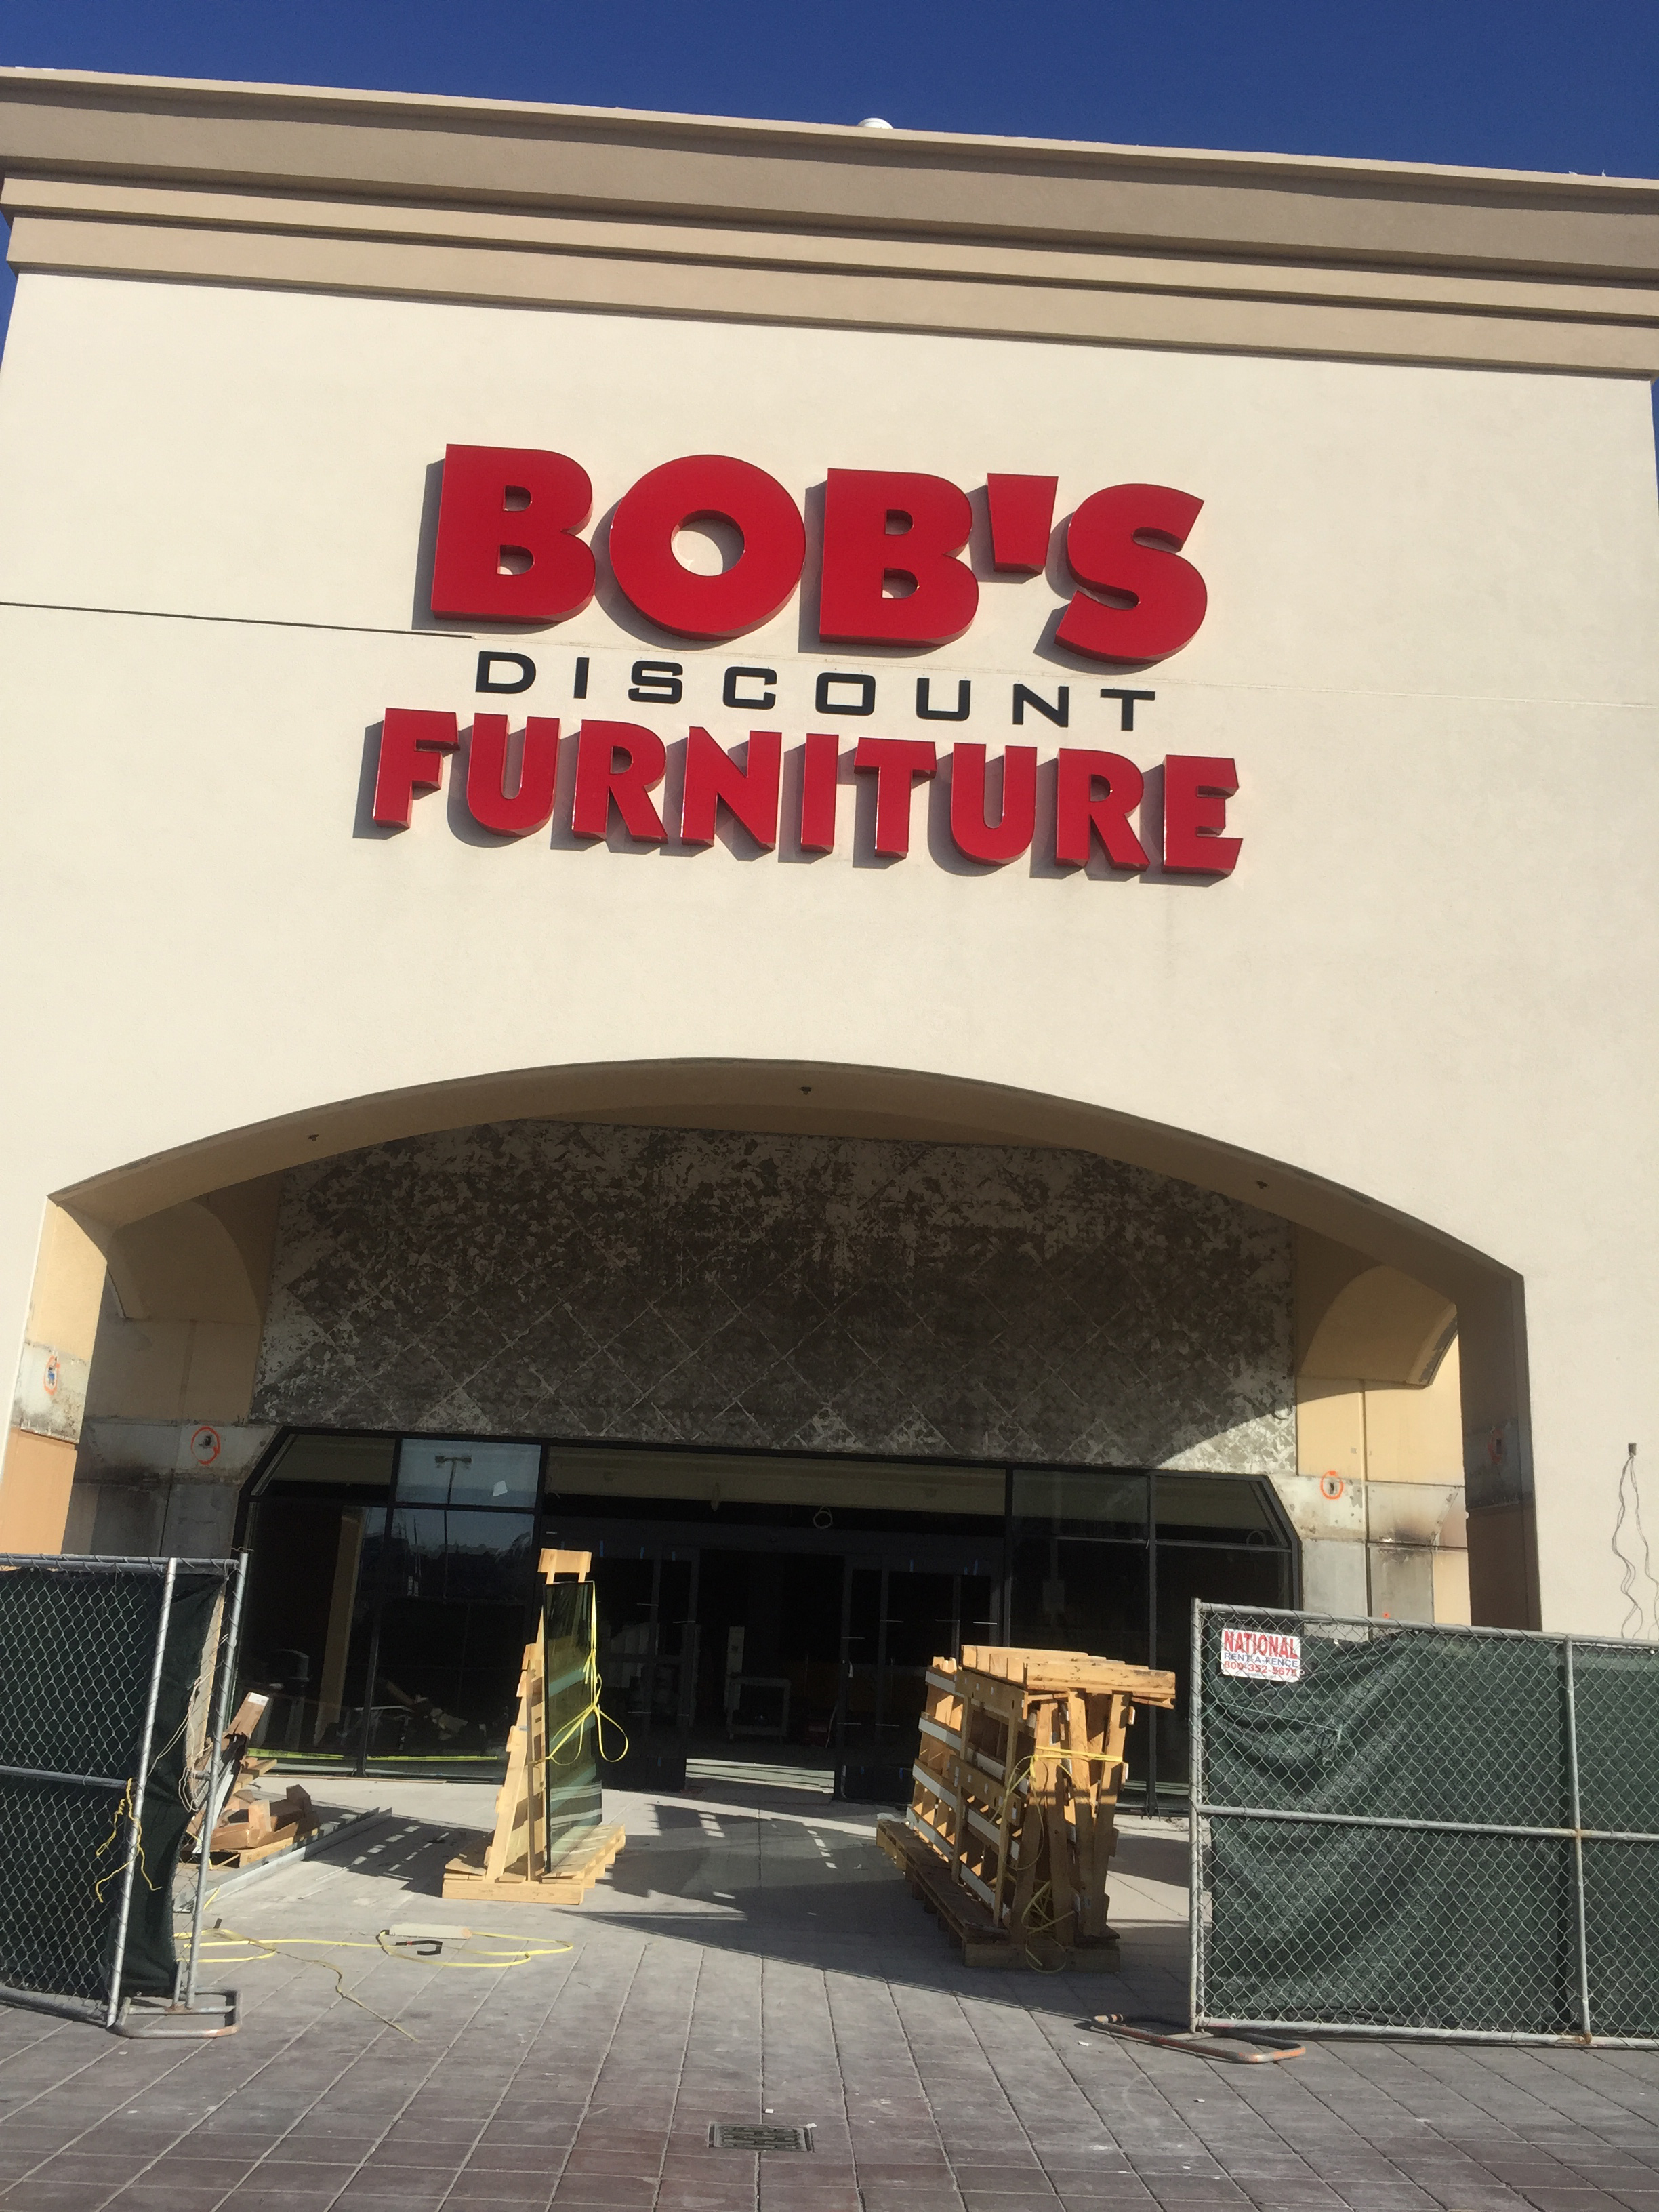 Bobu0027s Discount Furniture Is Opening In Huntington BeachÊonÊThursday, Feb.  15Êin The Space That Used